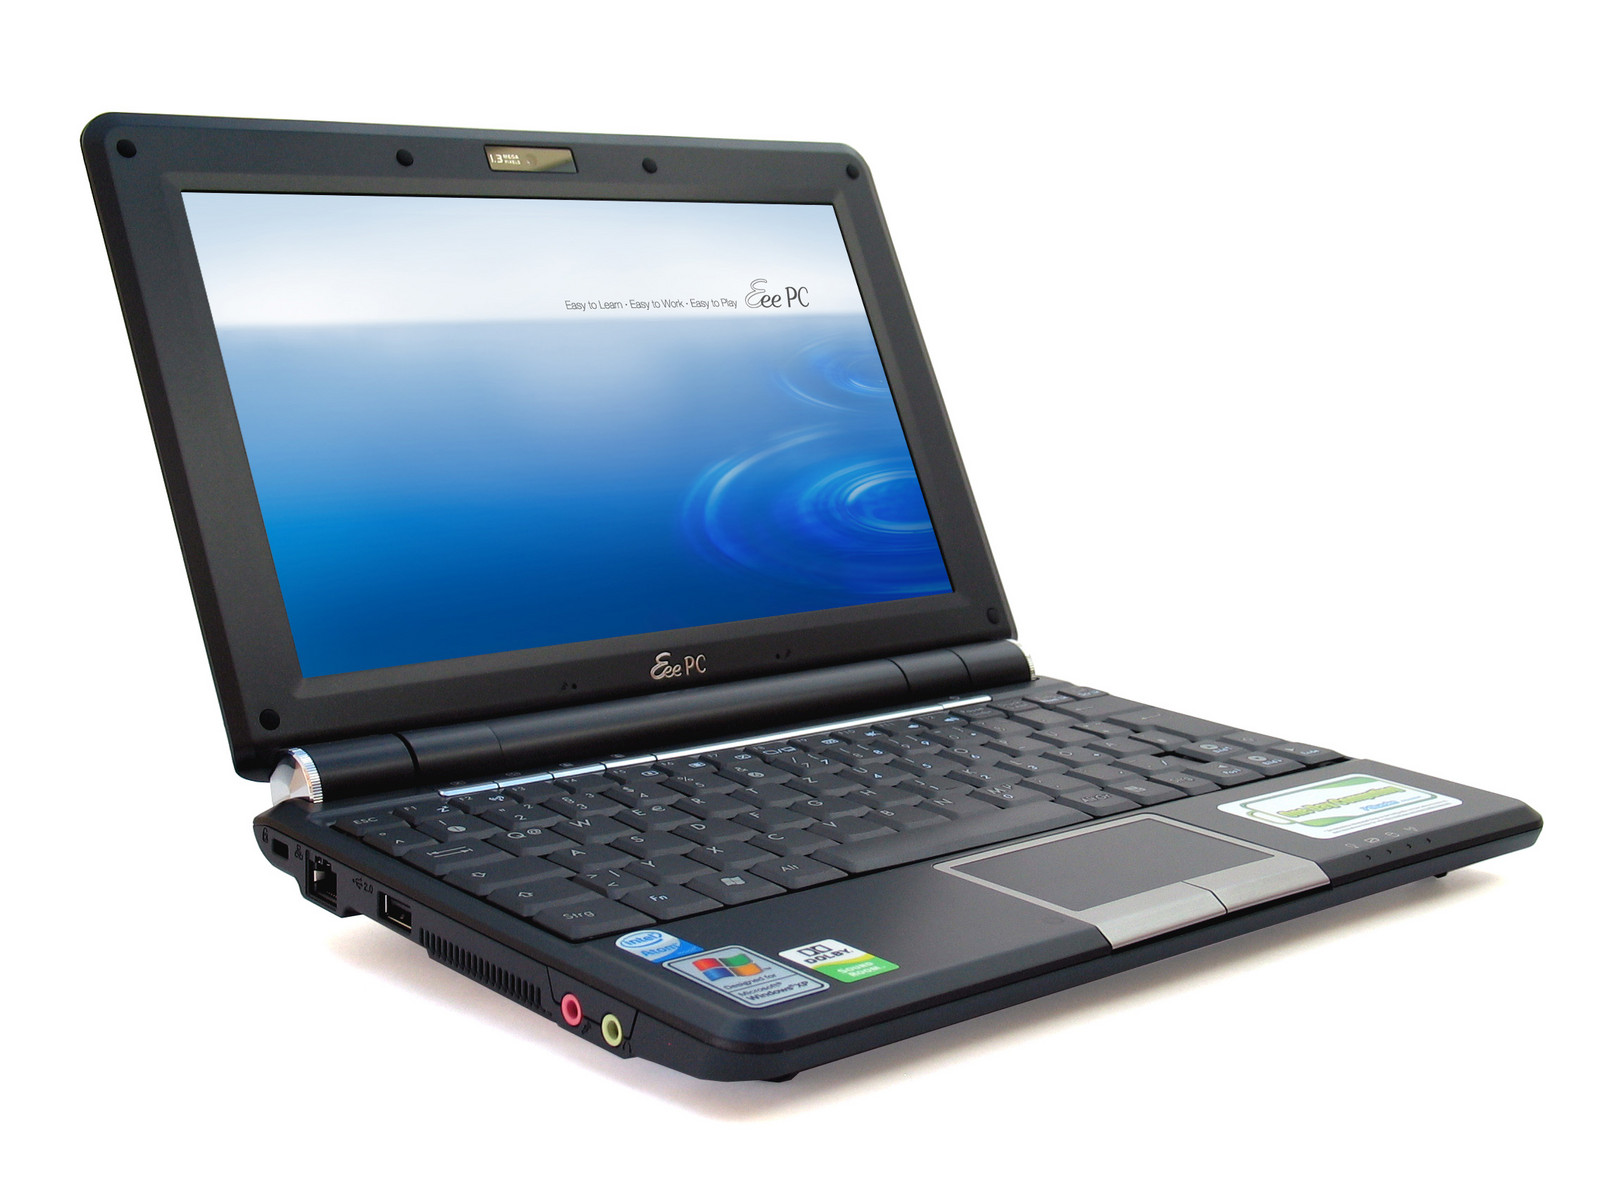 ASUS EEE PC 904HD VGA DRIVERS FOR WINDOWS DOWNLOAD